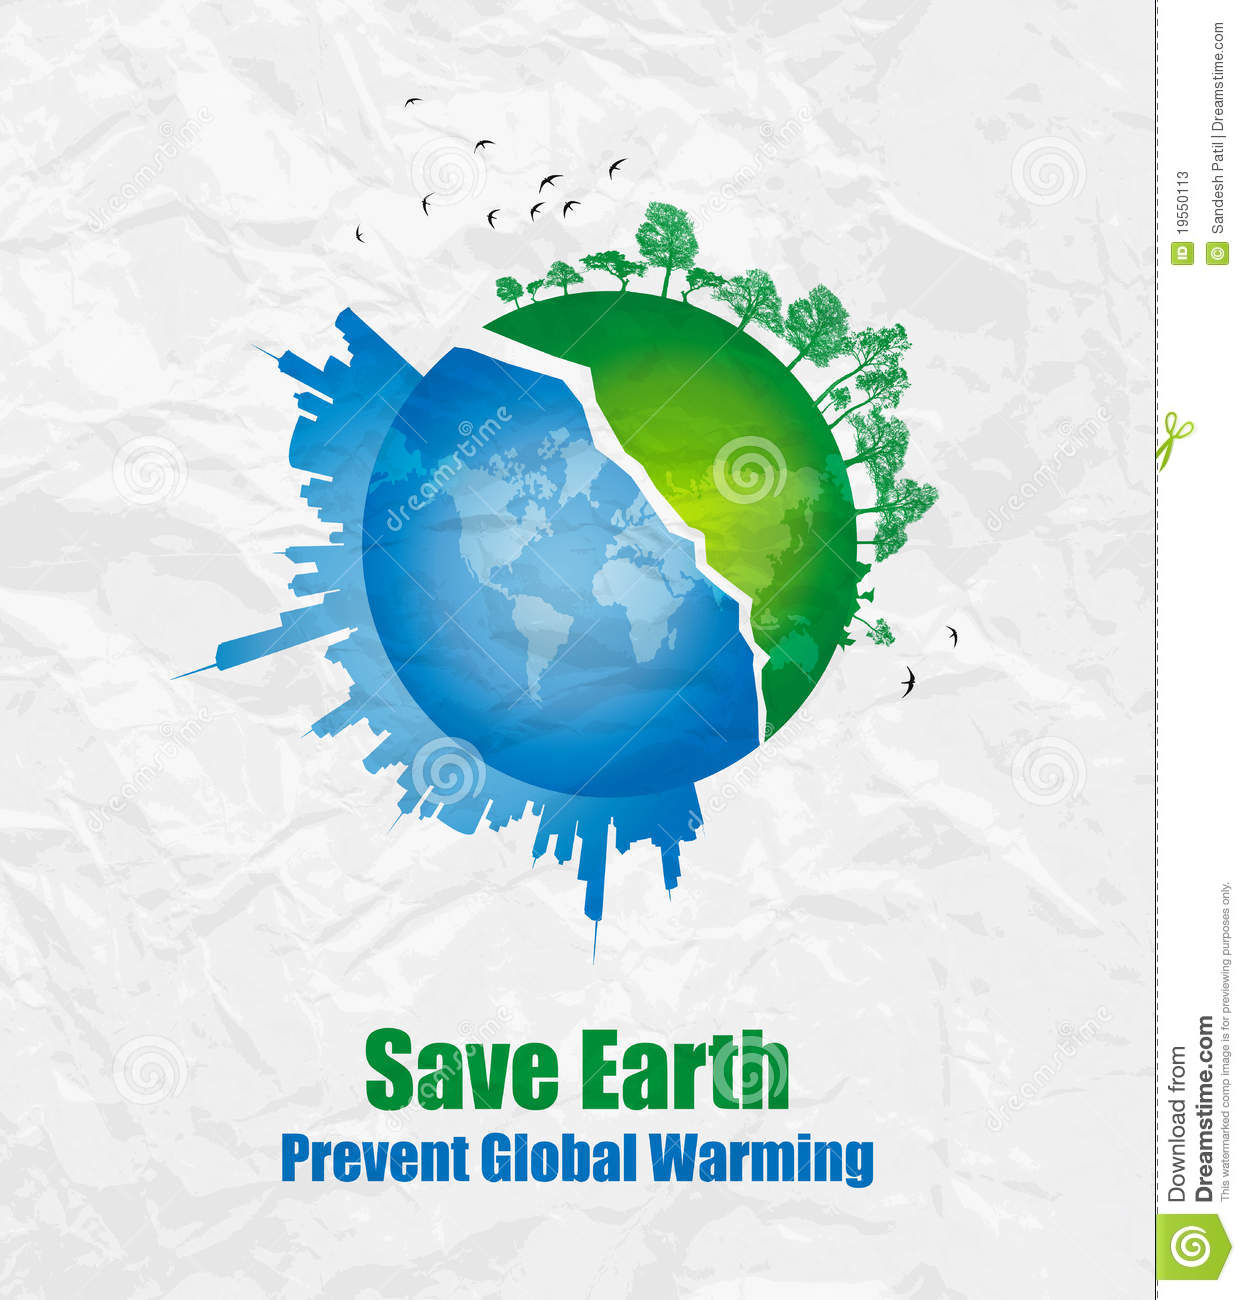 essay on save the earth How to we save the earth our planet is in great danger the people of earth have wasted and misused the natural recourses of earth several plans have been developed to stop the abuse of earthenvironmental problems have become so complex that many individuals feel they can have no effect on them.